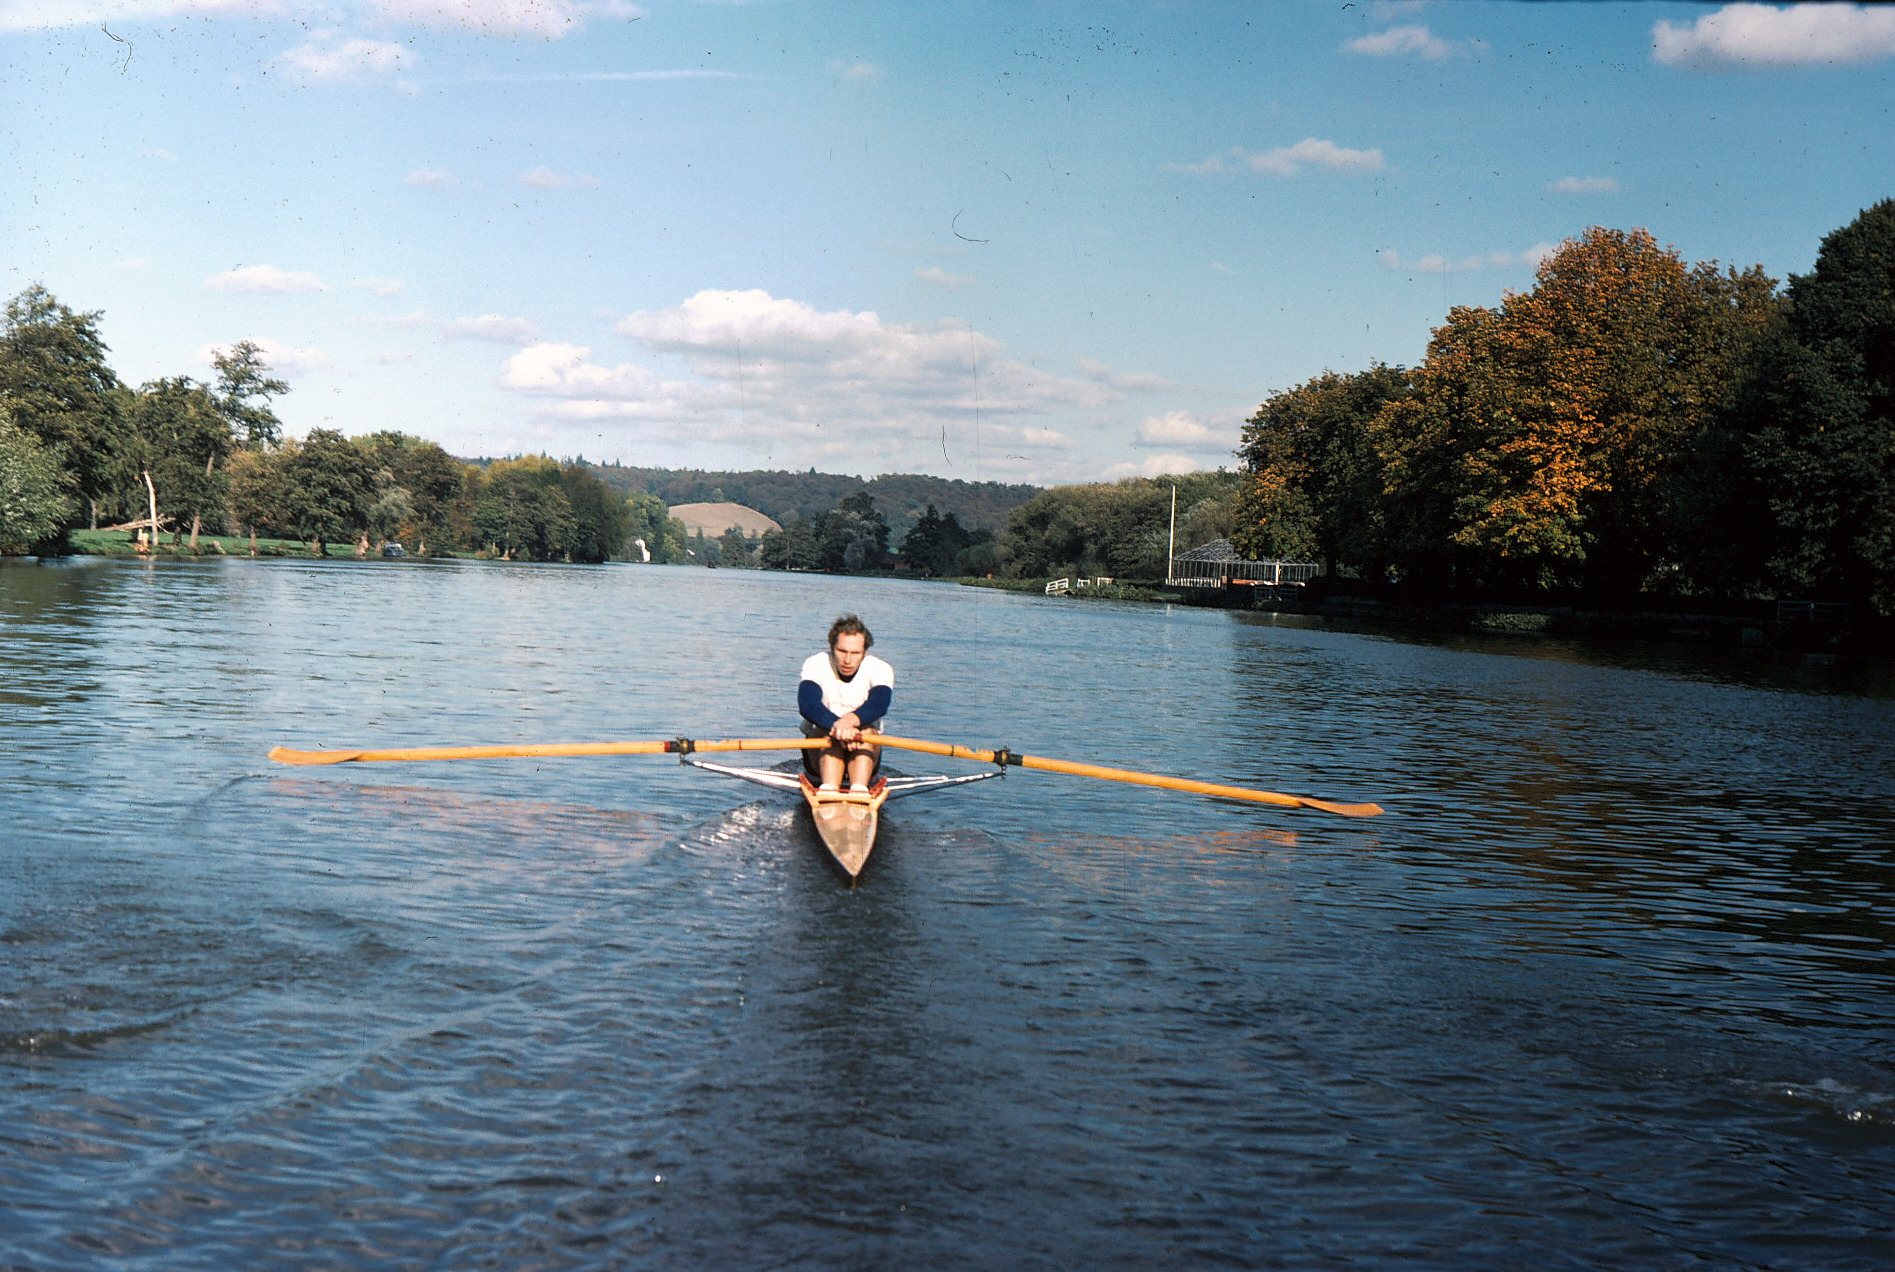 sculling, hands in rowing,